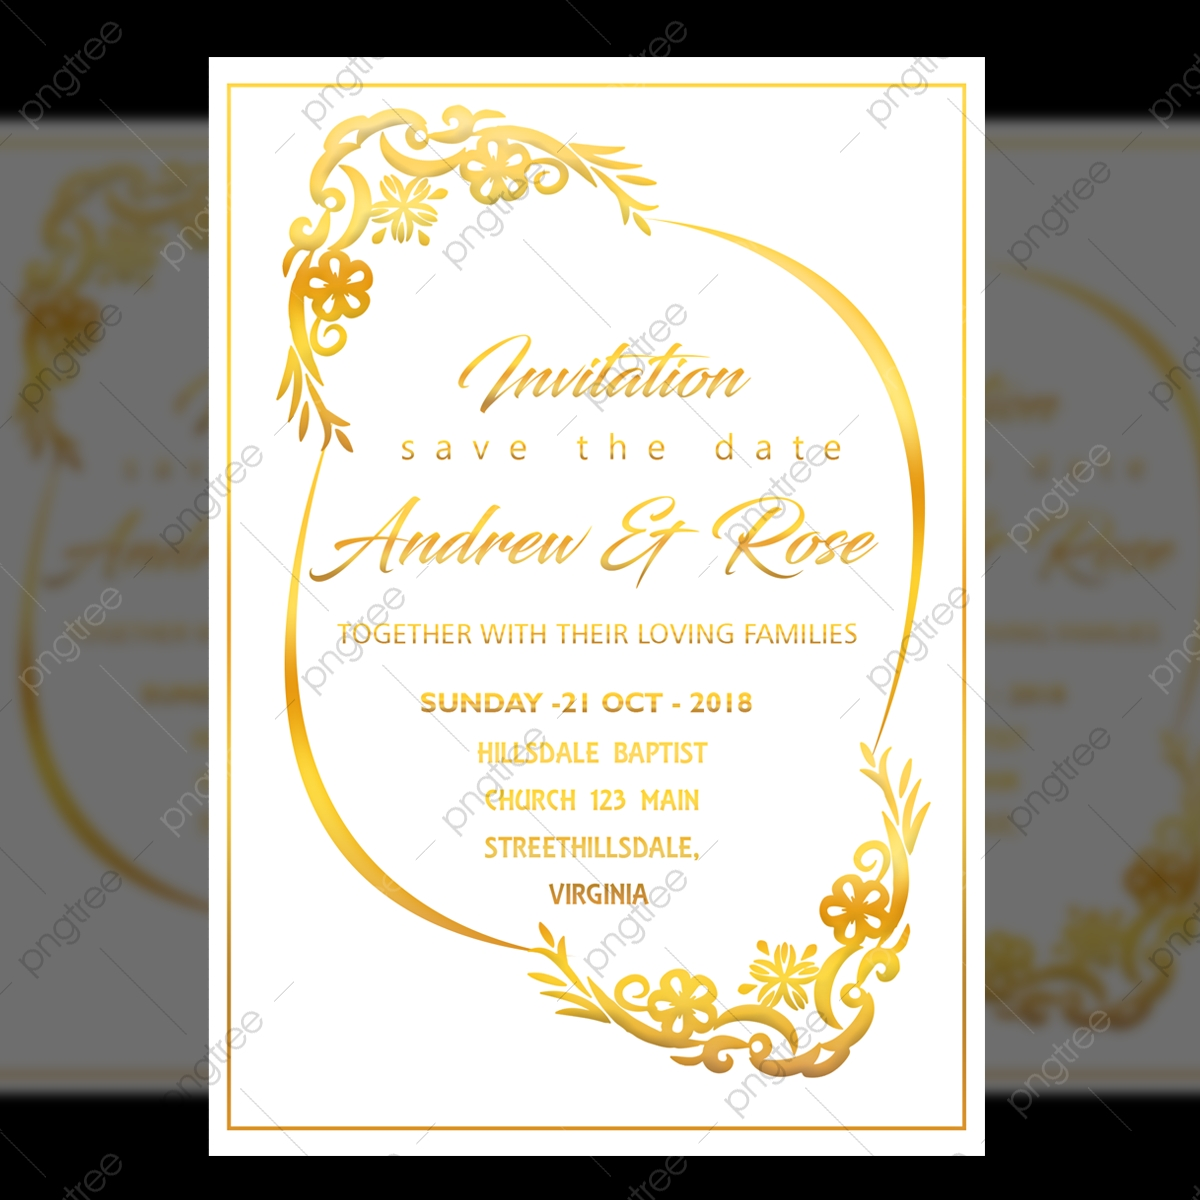 White Wedding Invitation Card Design Template With Gold Floral Frame Template For Free Download On Pngtree